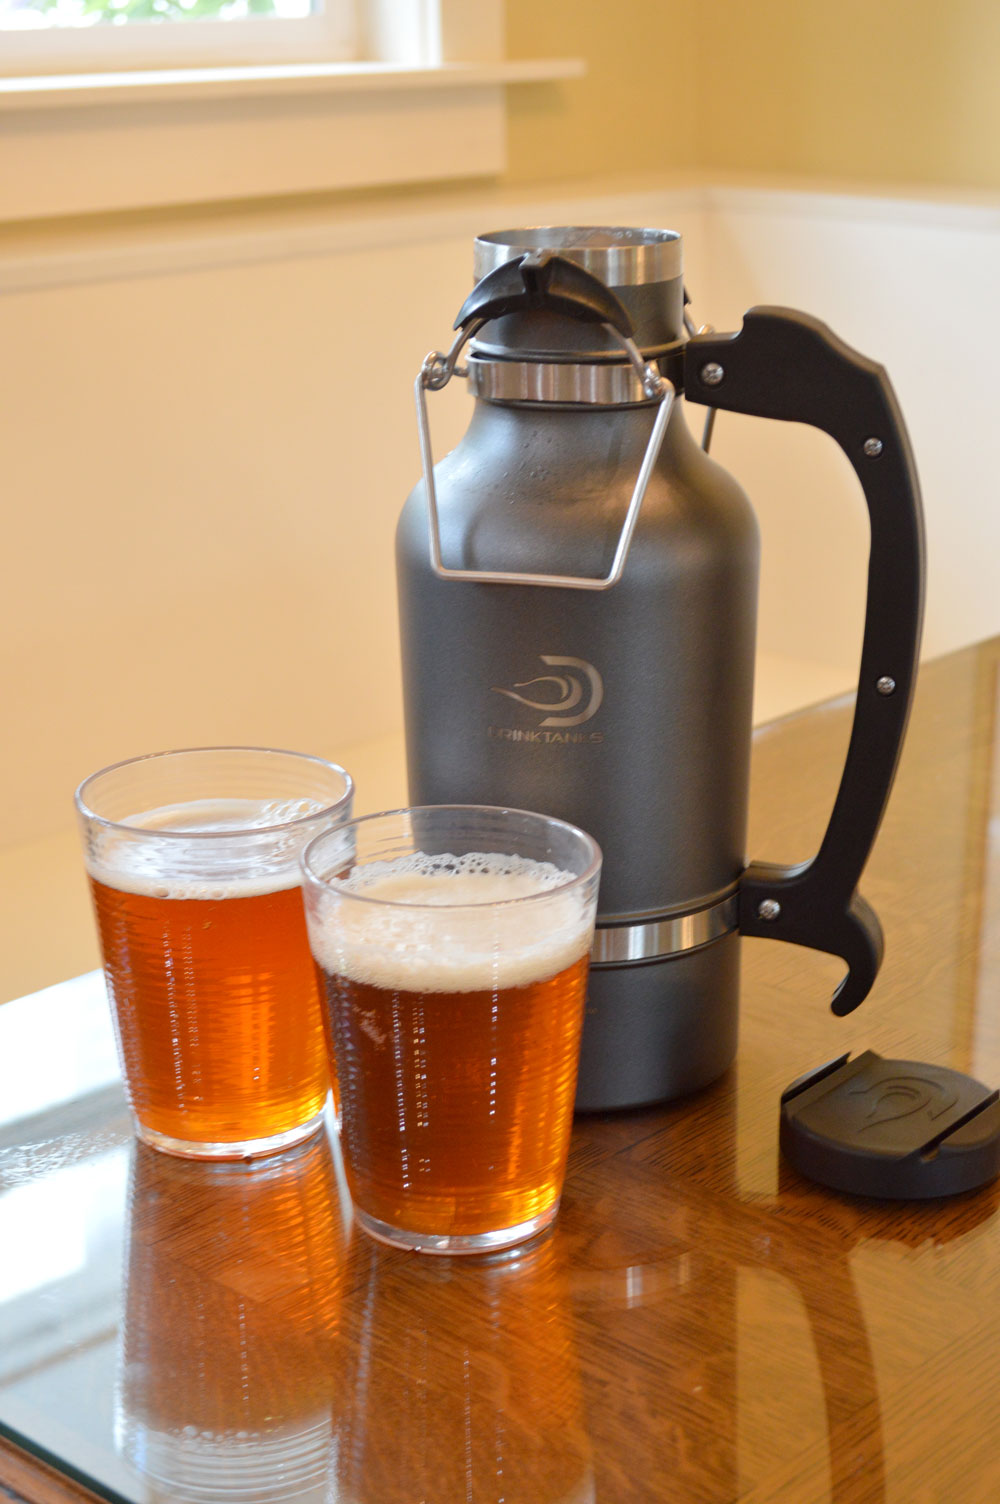 DrinkTanks Personal Growler is carbonation friendly - Mommy Scene review